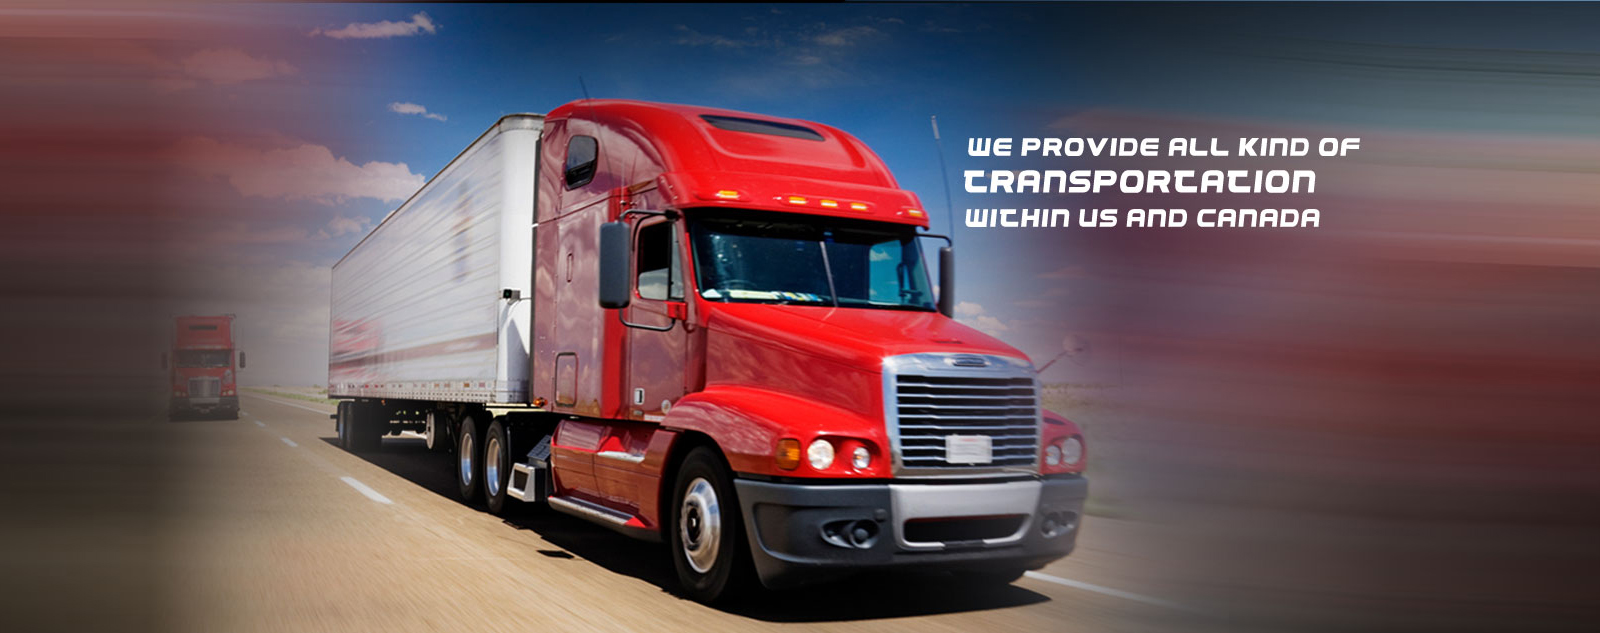 freight transportation services in Canada